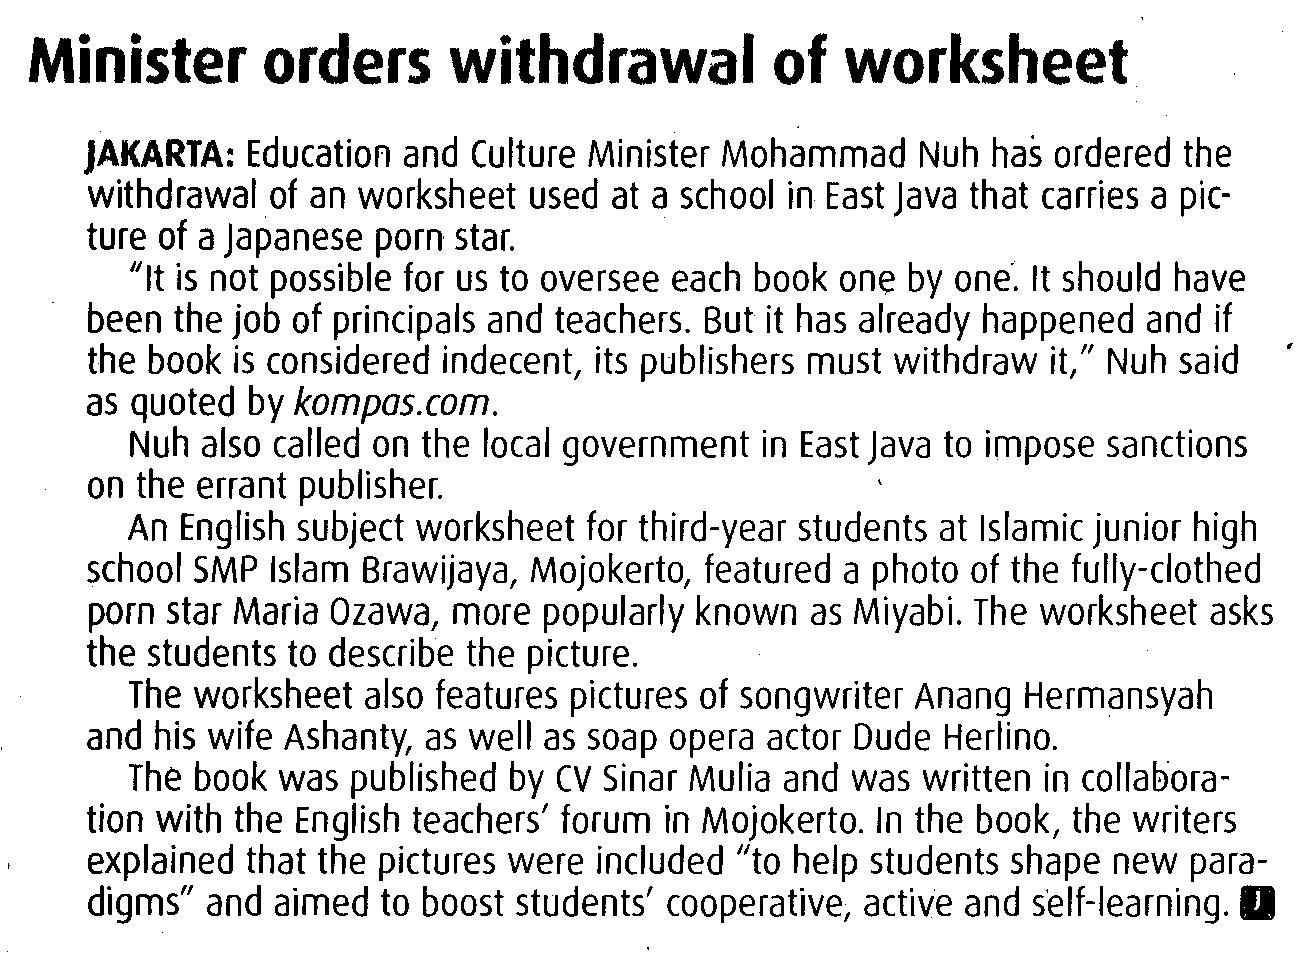 Minister Orders Withdrawal Of Worksheet